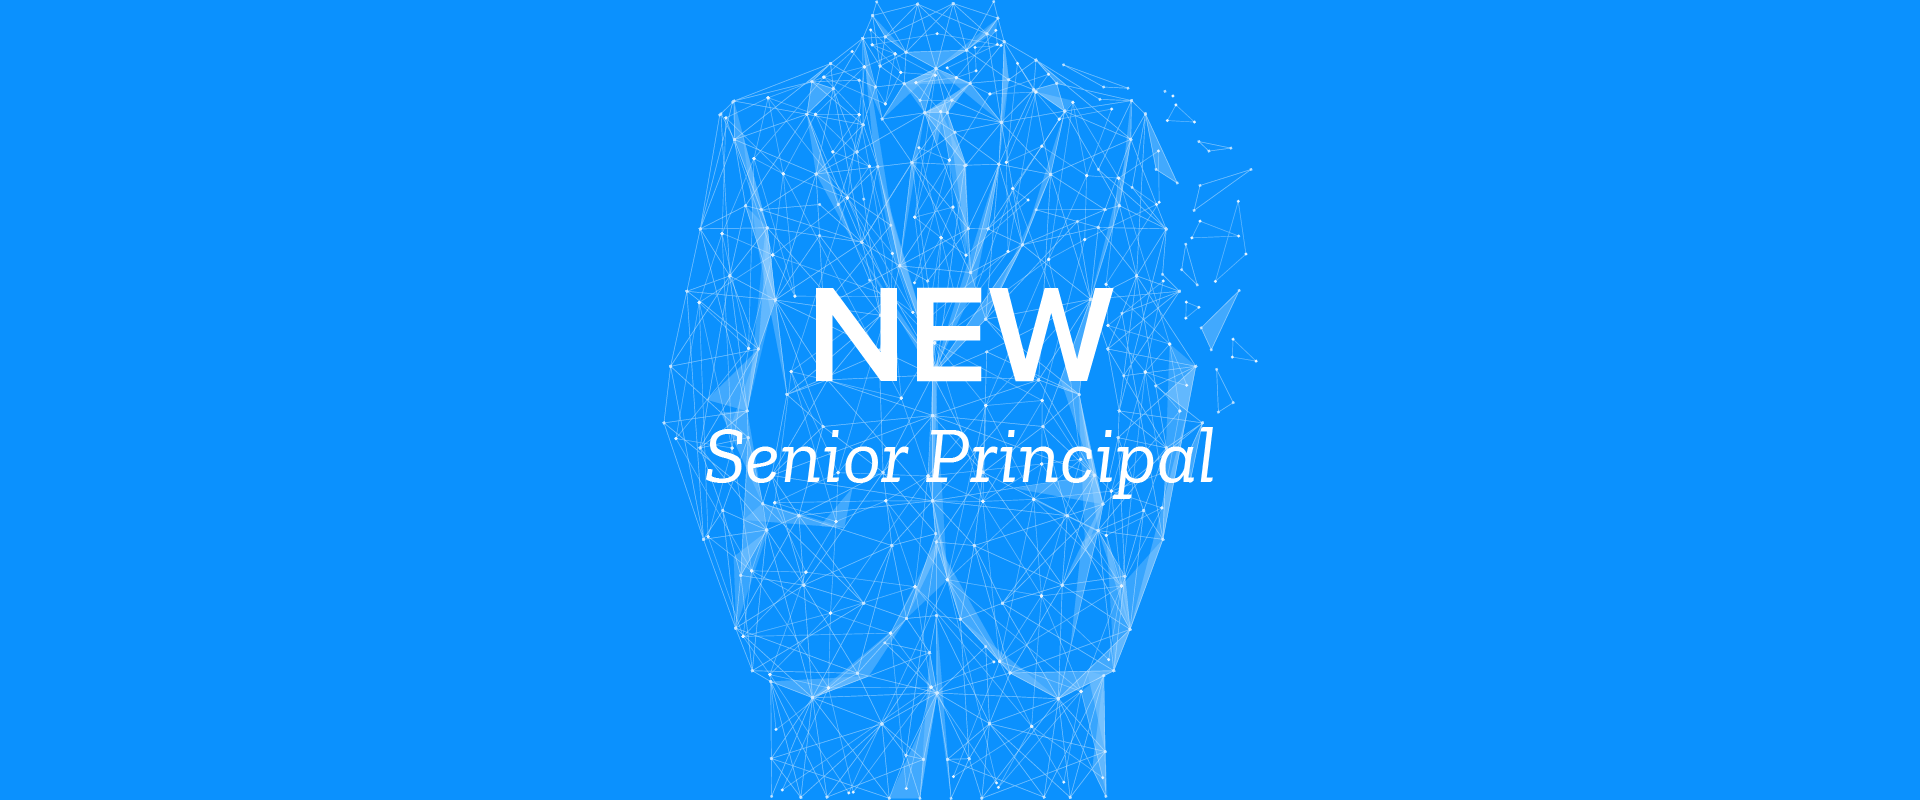 Deallus Announce New Senior Principal